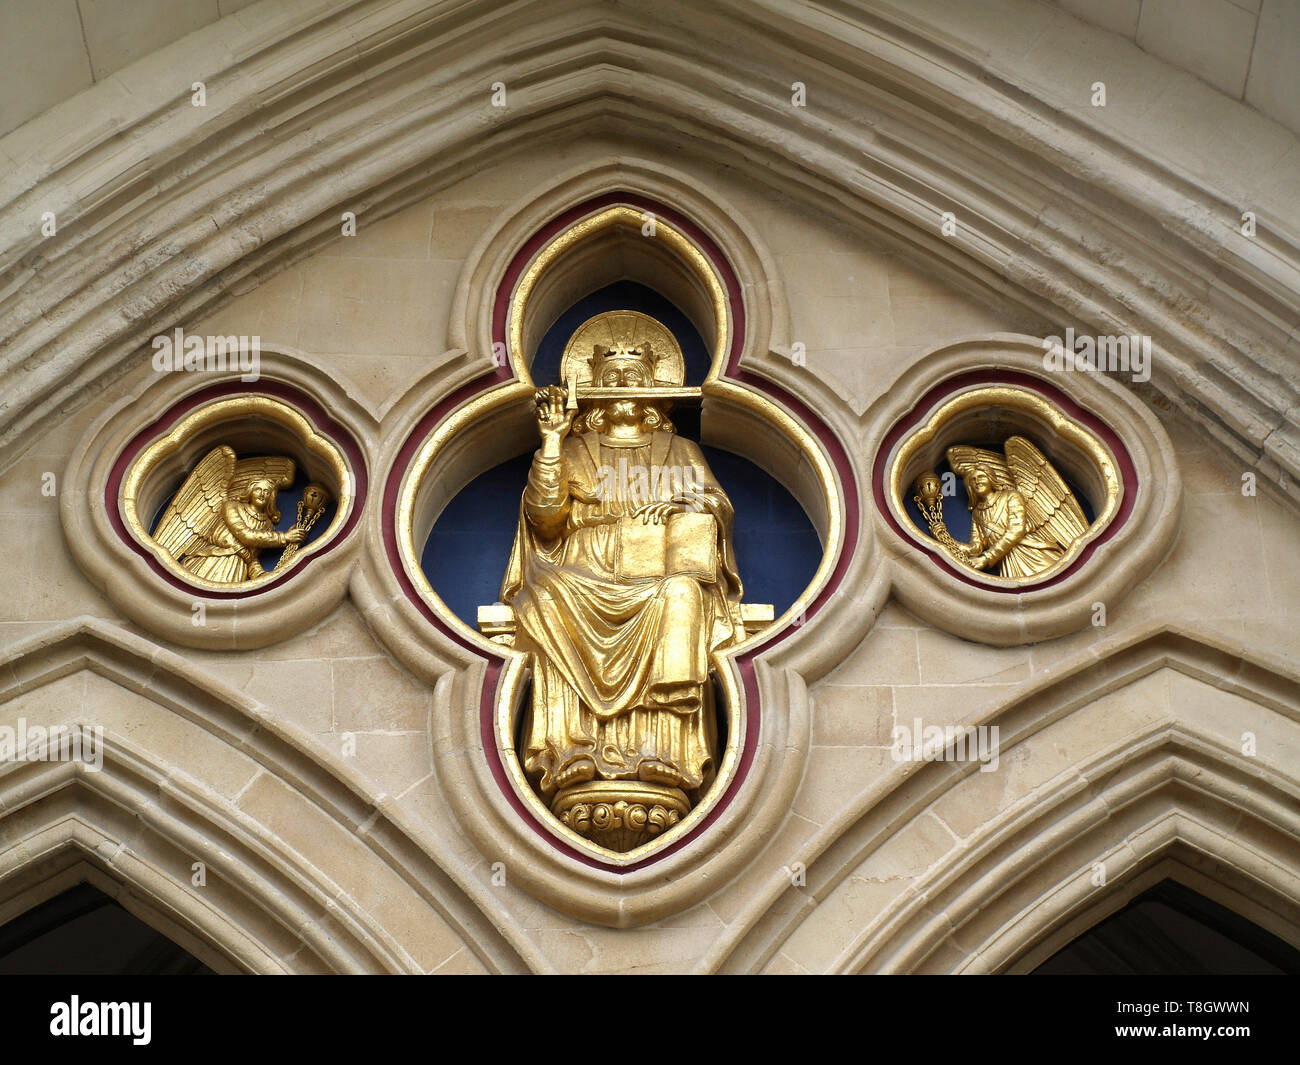 Chichester Cathedral, West Sussex, England, UK - Stock Image